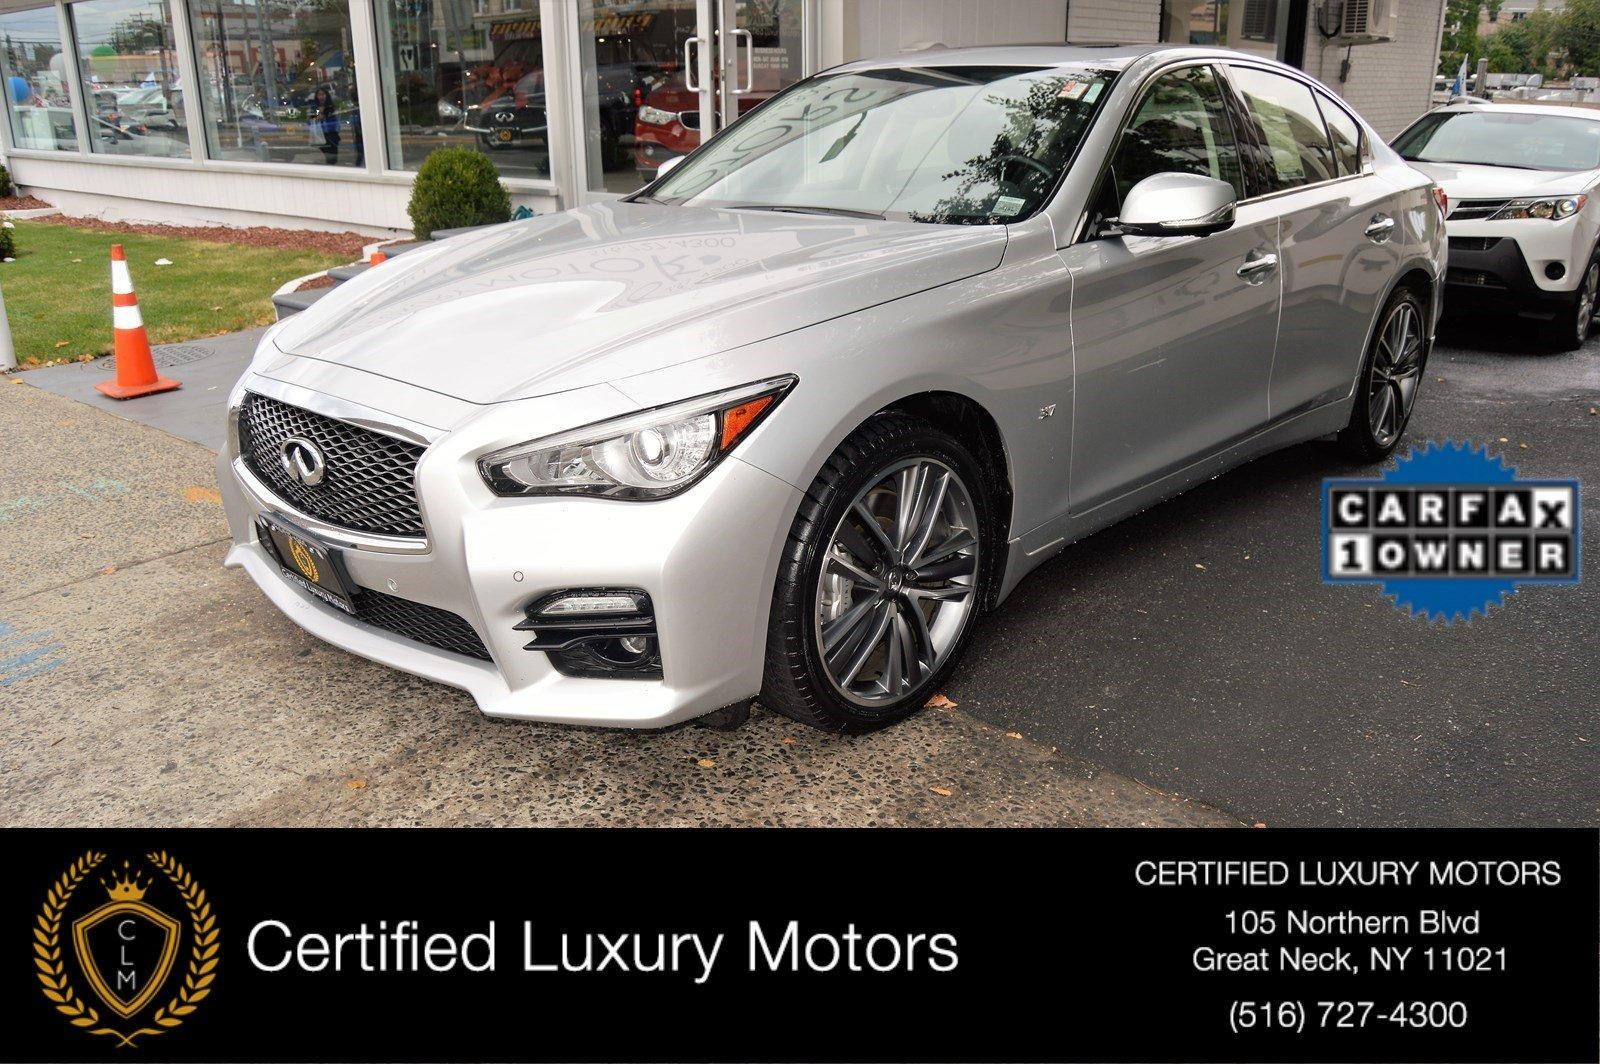 2014 infiniti q50 sport stock 2818 for sale near great neck ny ny infiniti dealer. Black Bedroom Furniture Sets. Home Design Ideas